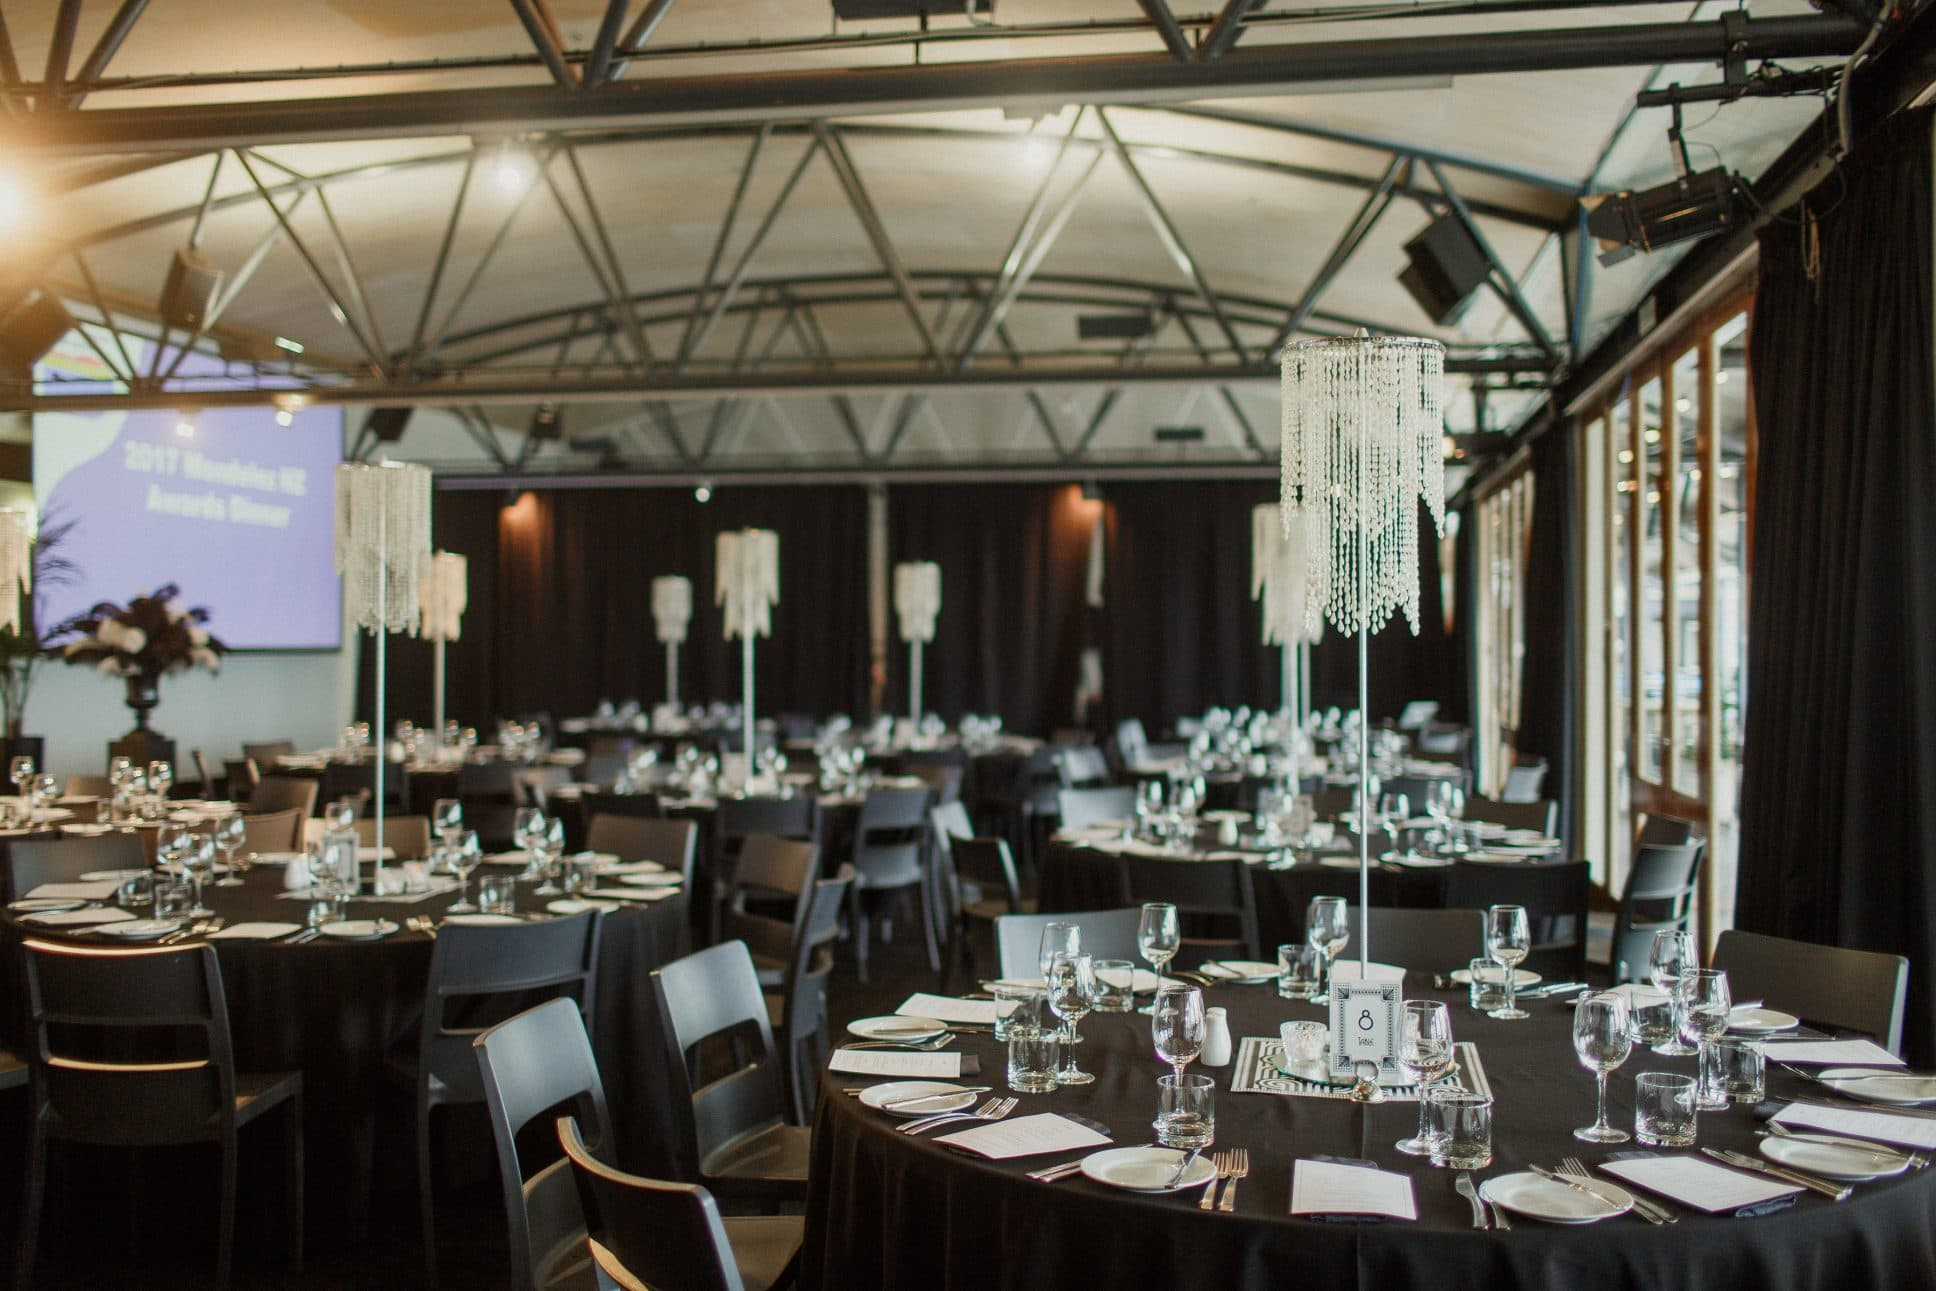 Aucklands, The Maritime Room set up for event